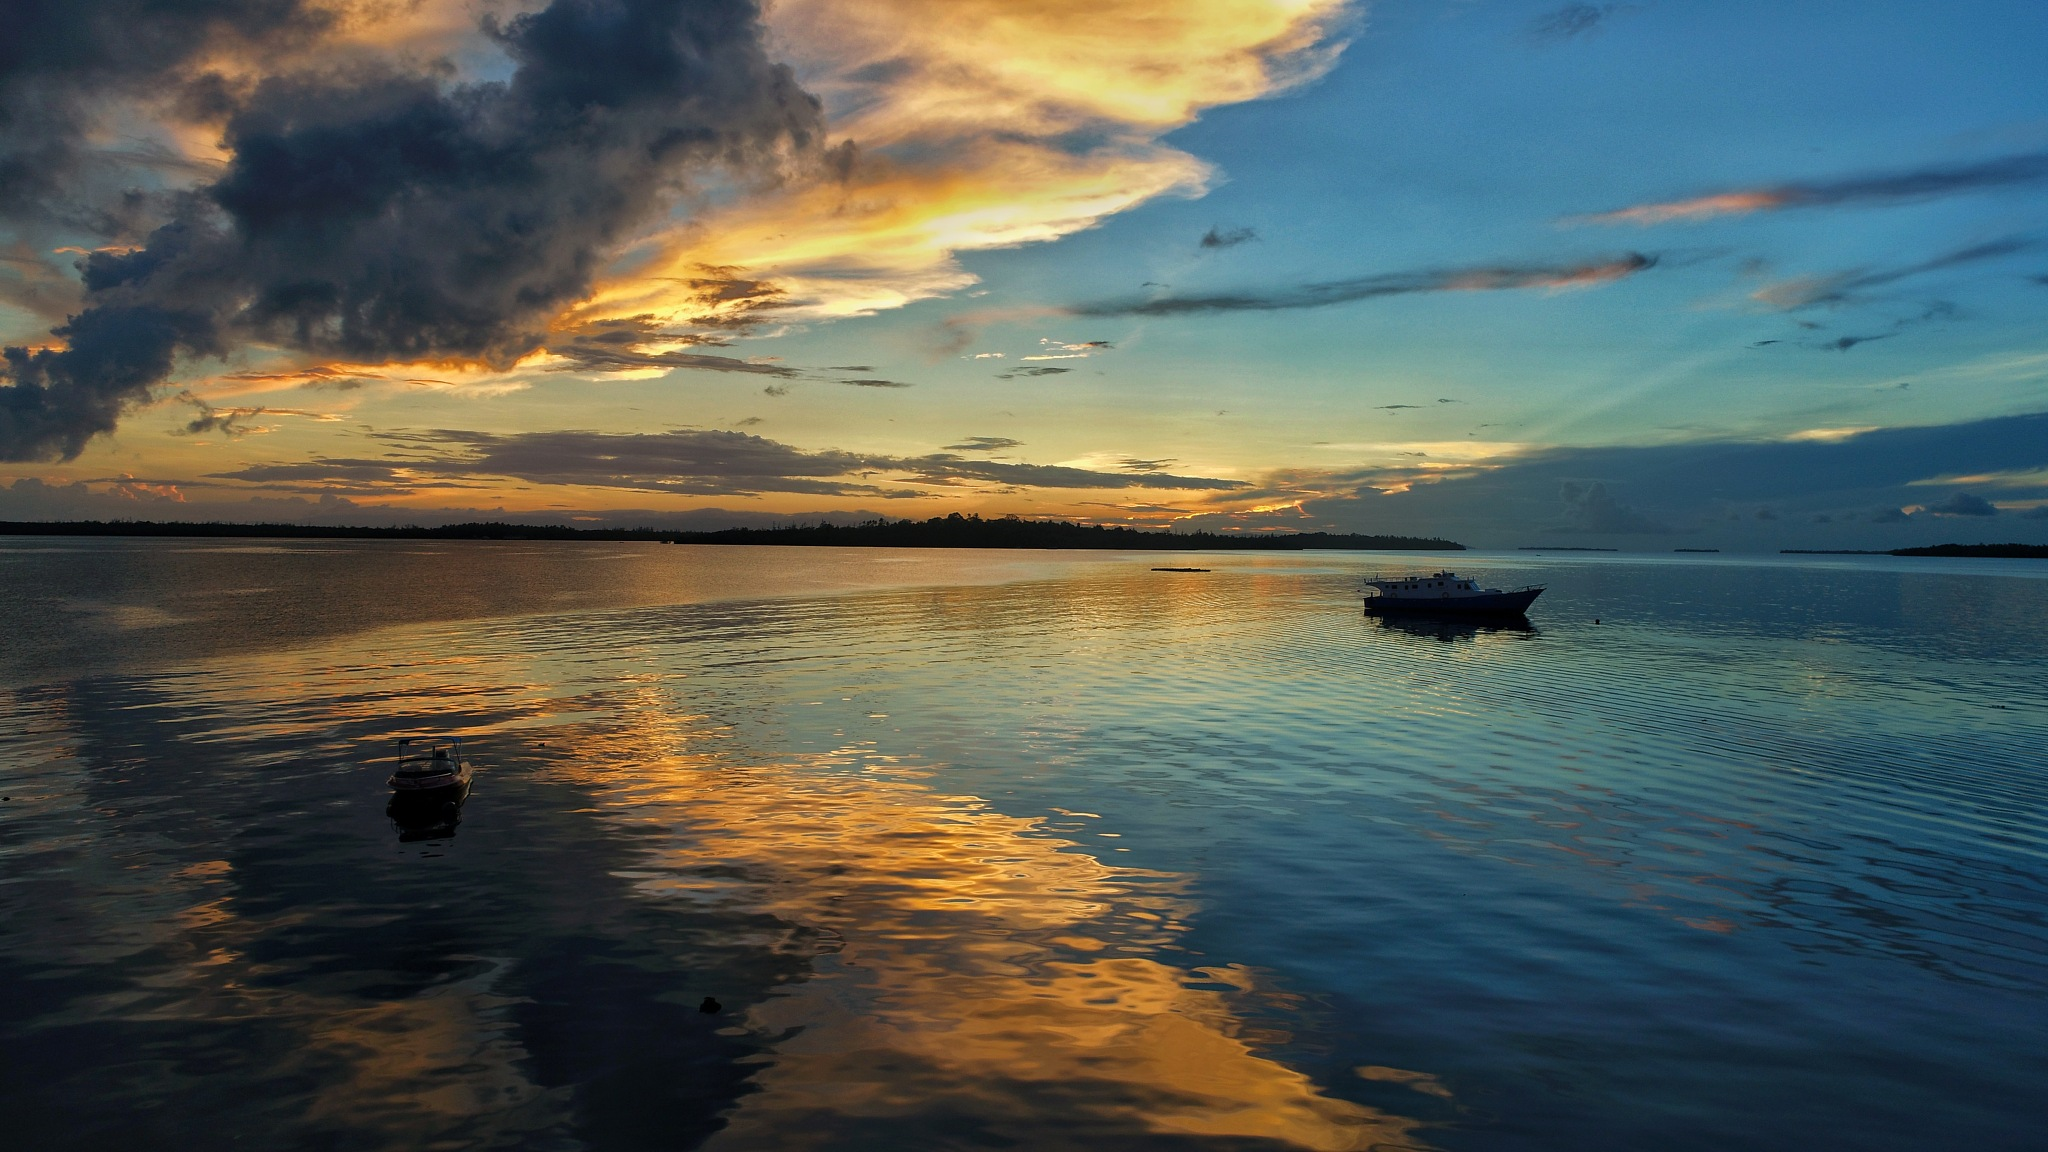 Sunset in Morotai by Rizky Arief Imanullah